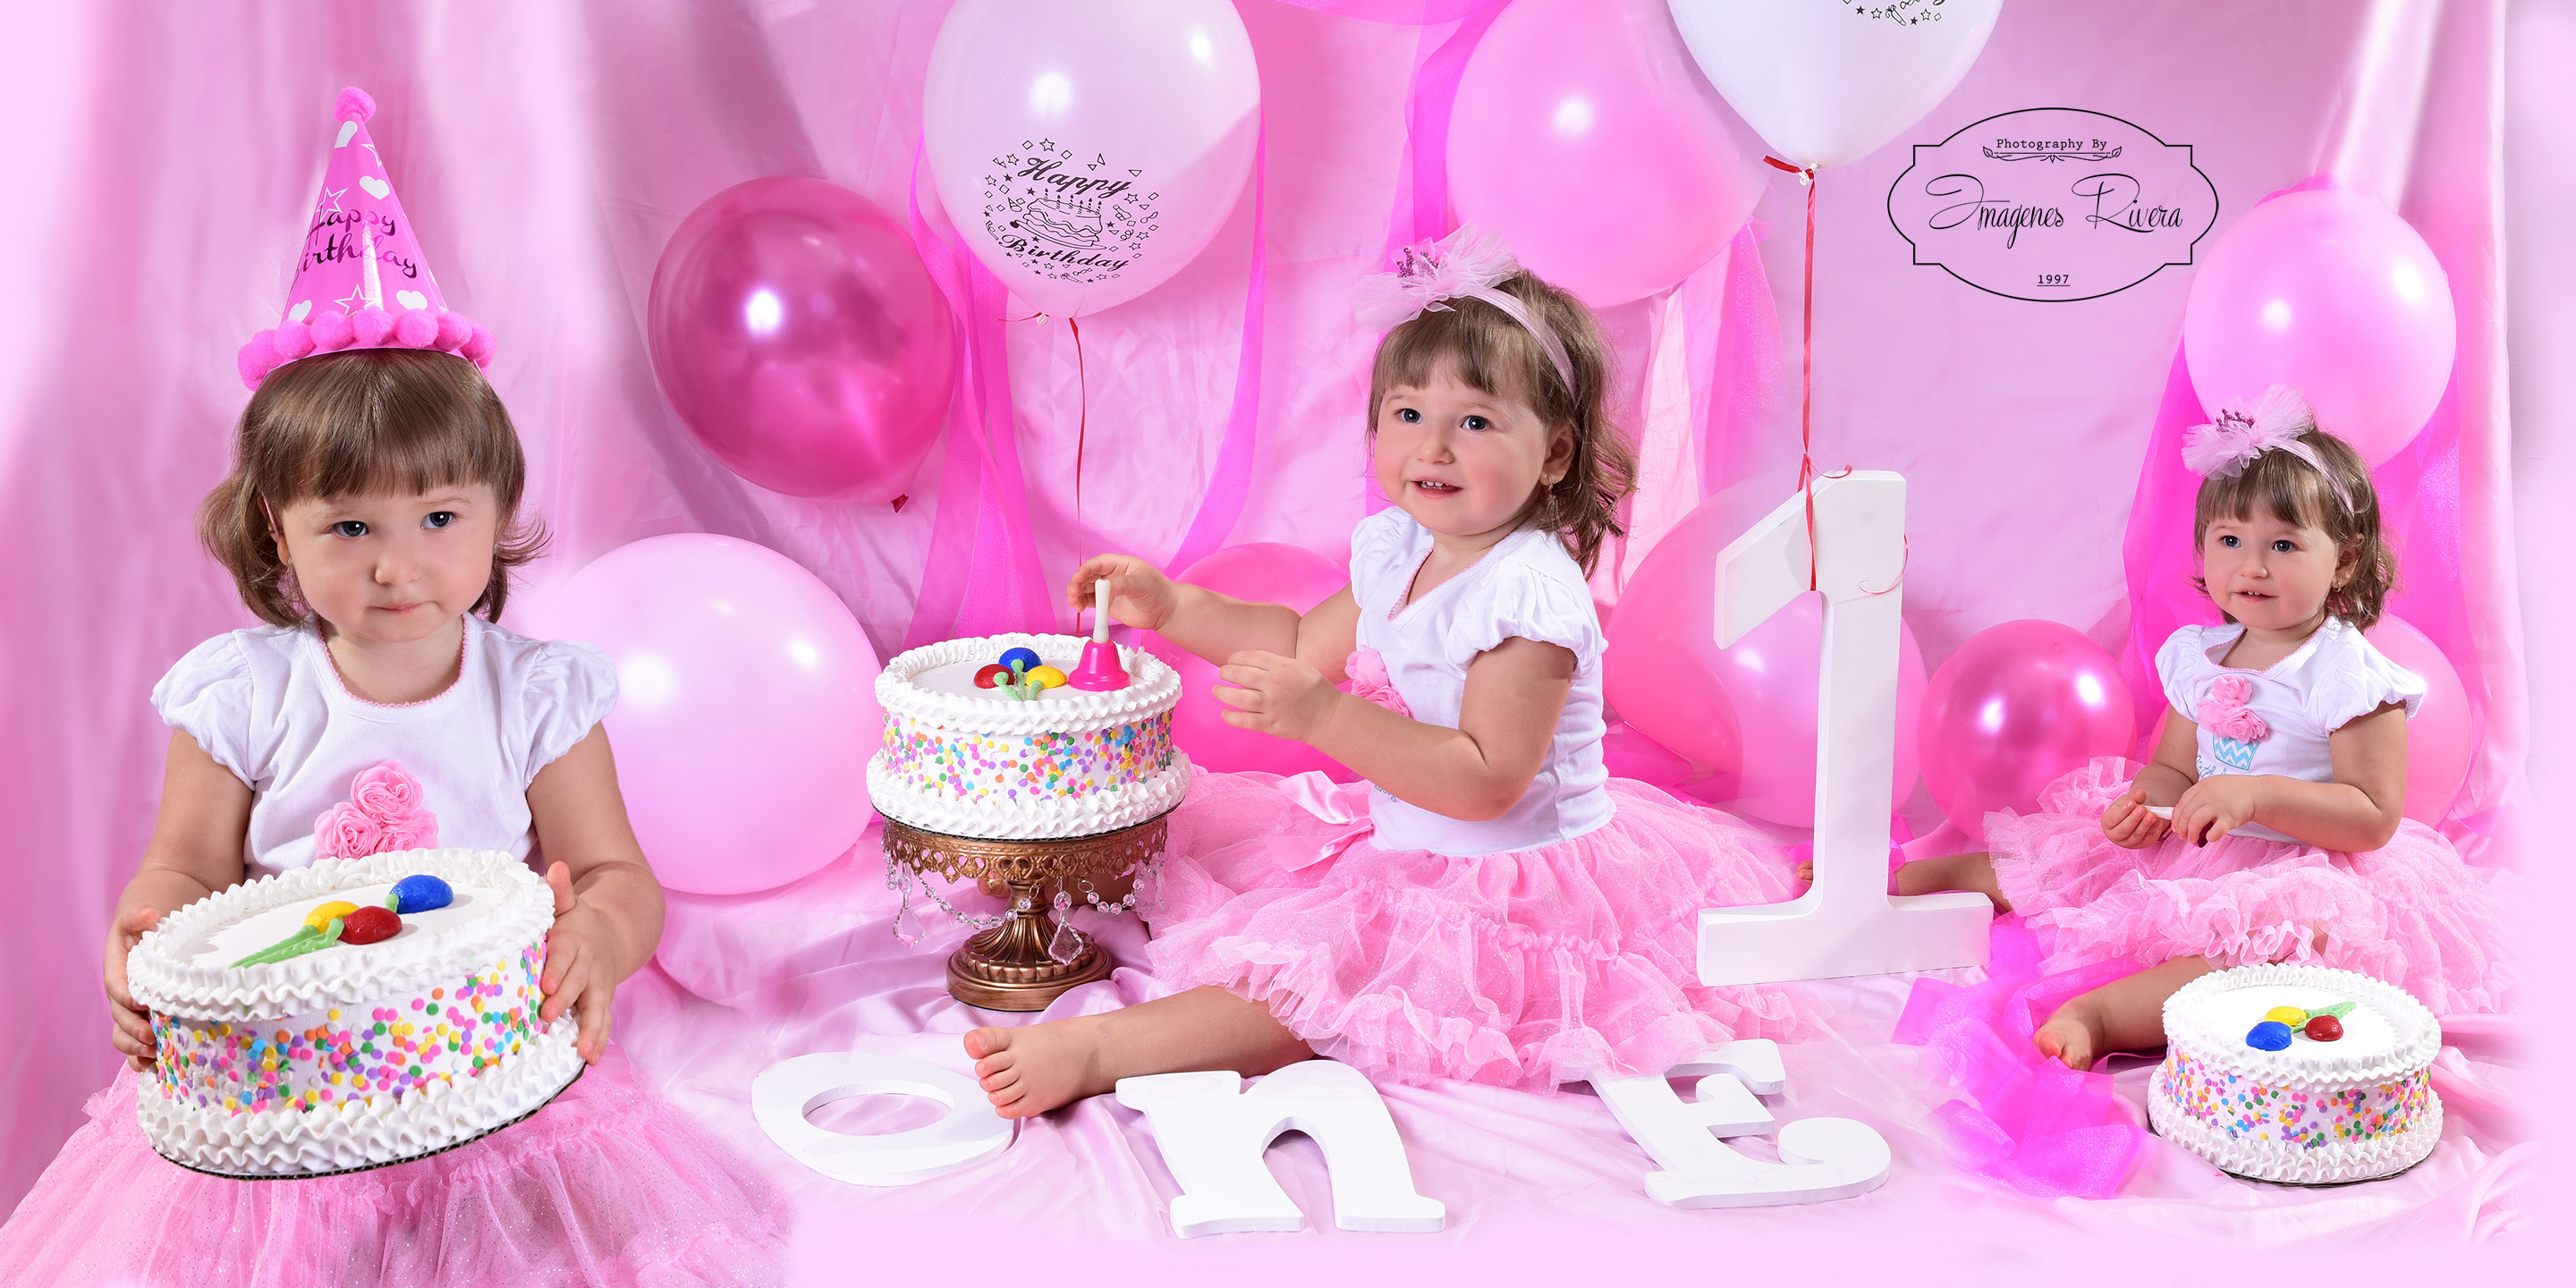 ♥ Elise´s photobook, first year cake smash session | Imagenes Rivera ♥